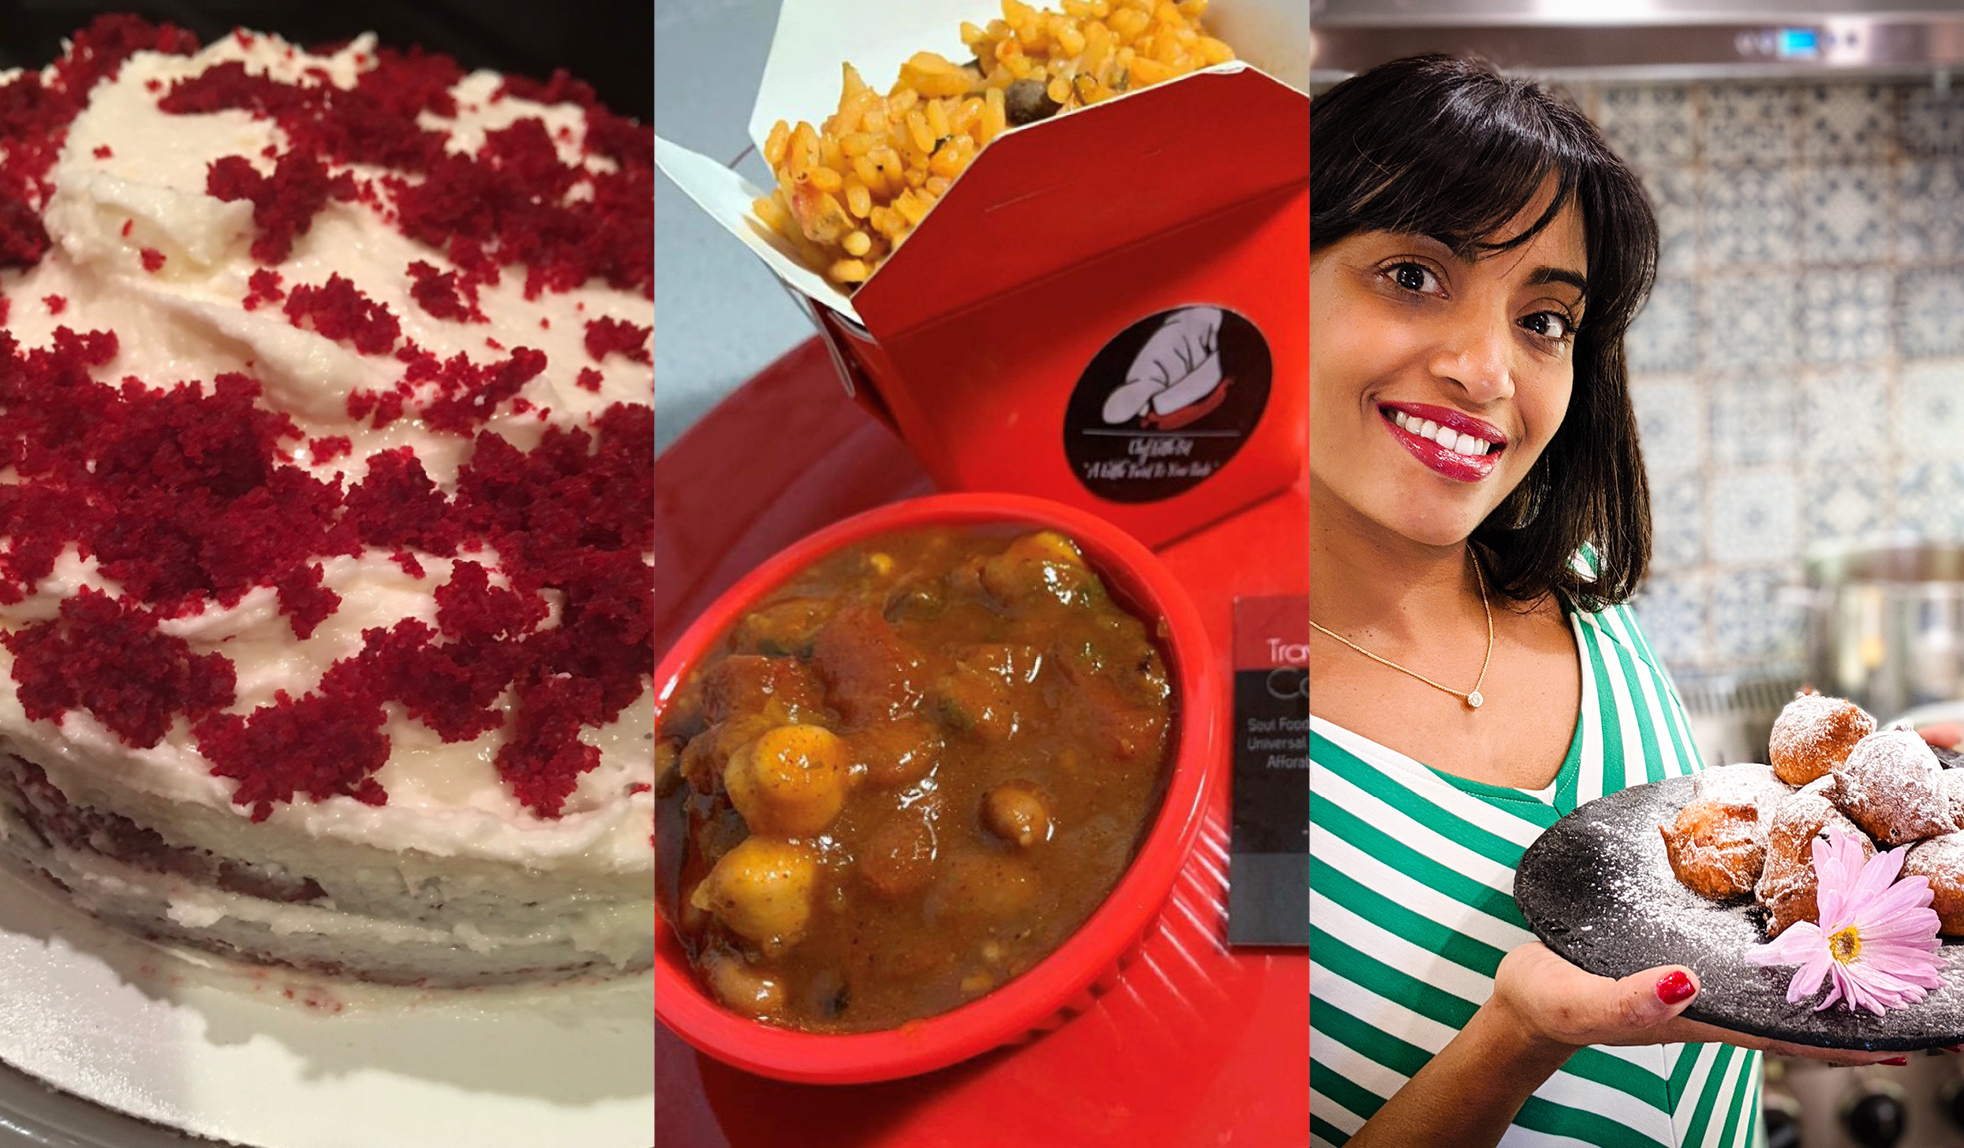 We're very happy to share recipes from our talented graduates!